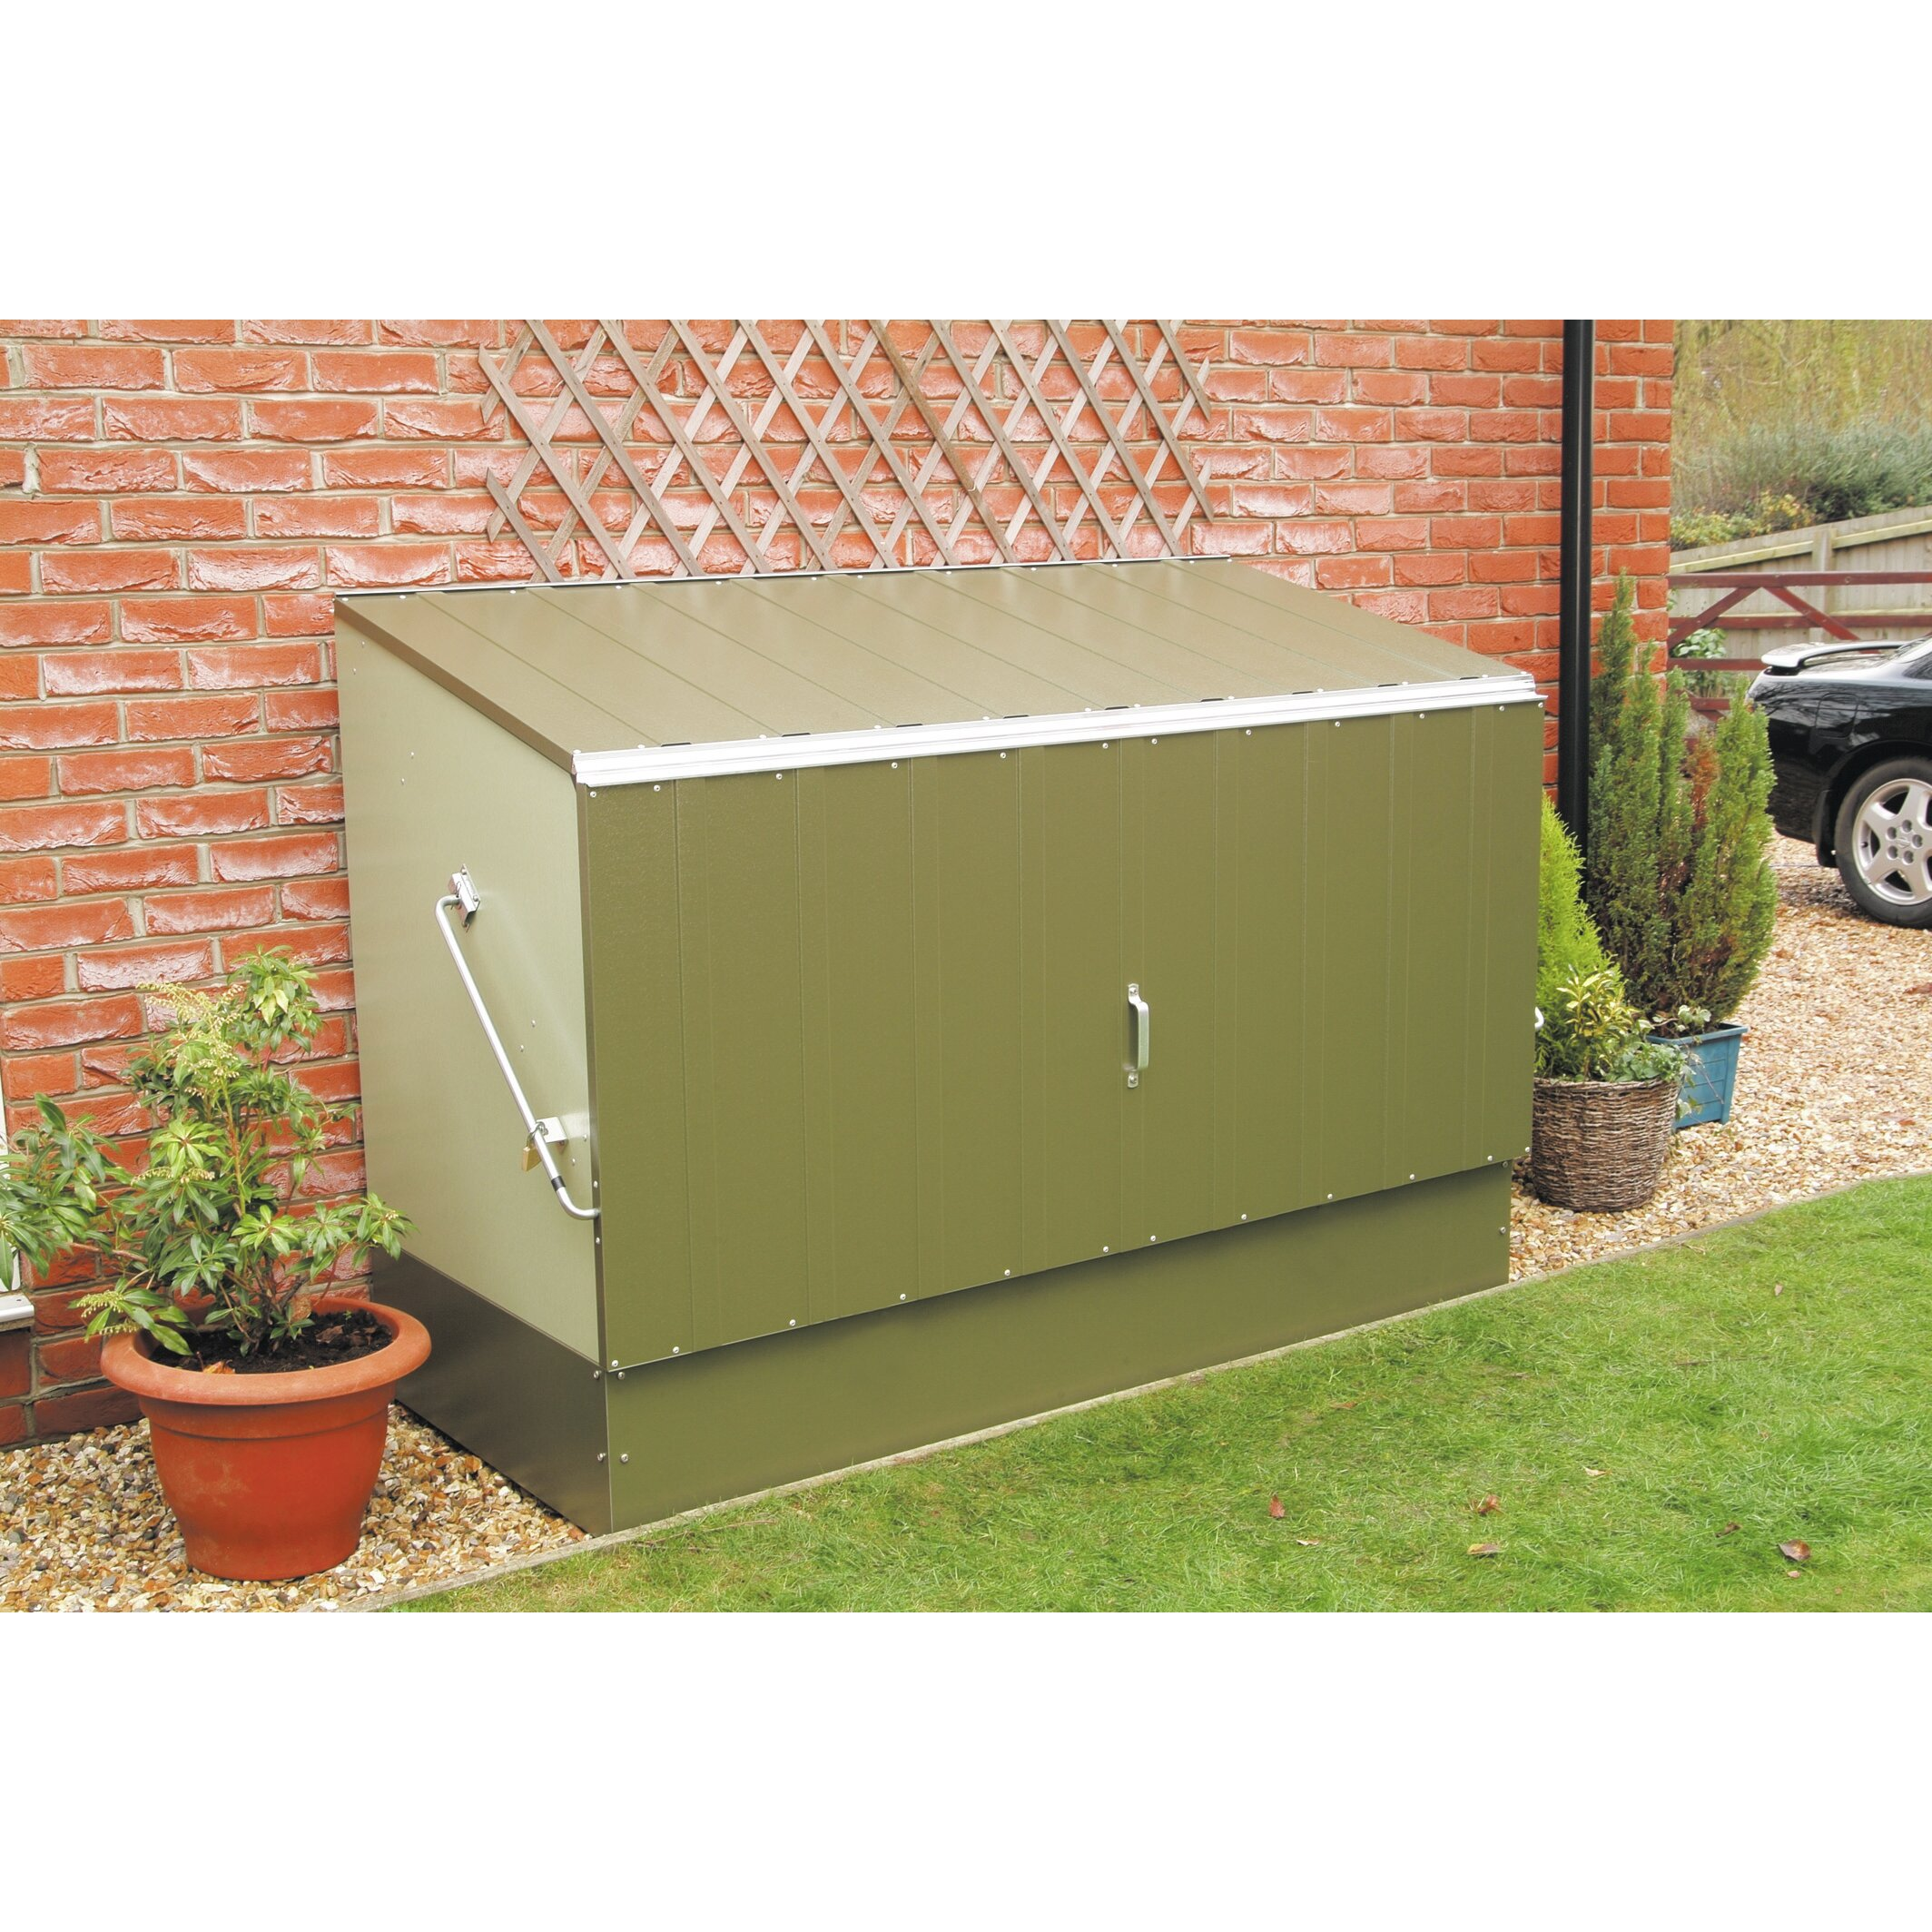 Rowlinson 4 ft h x 6 ft w steel storage shed reviews for 300 square foot shed